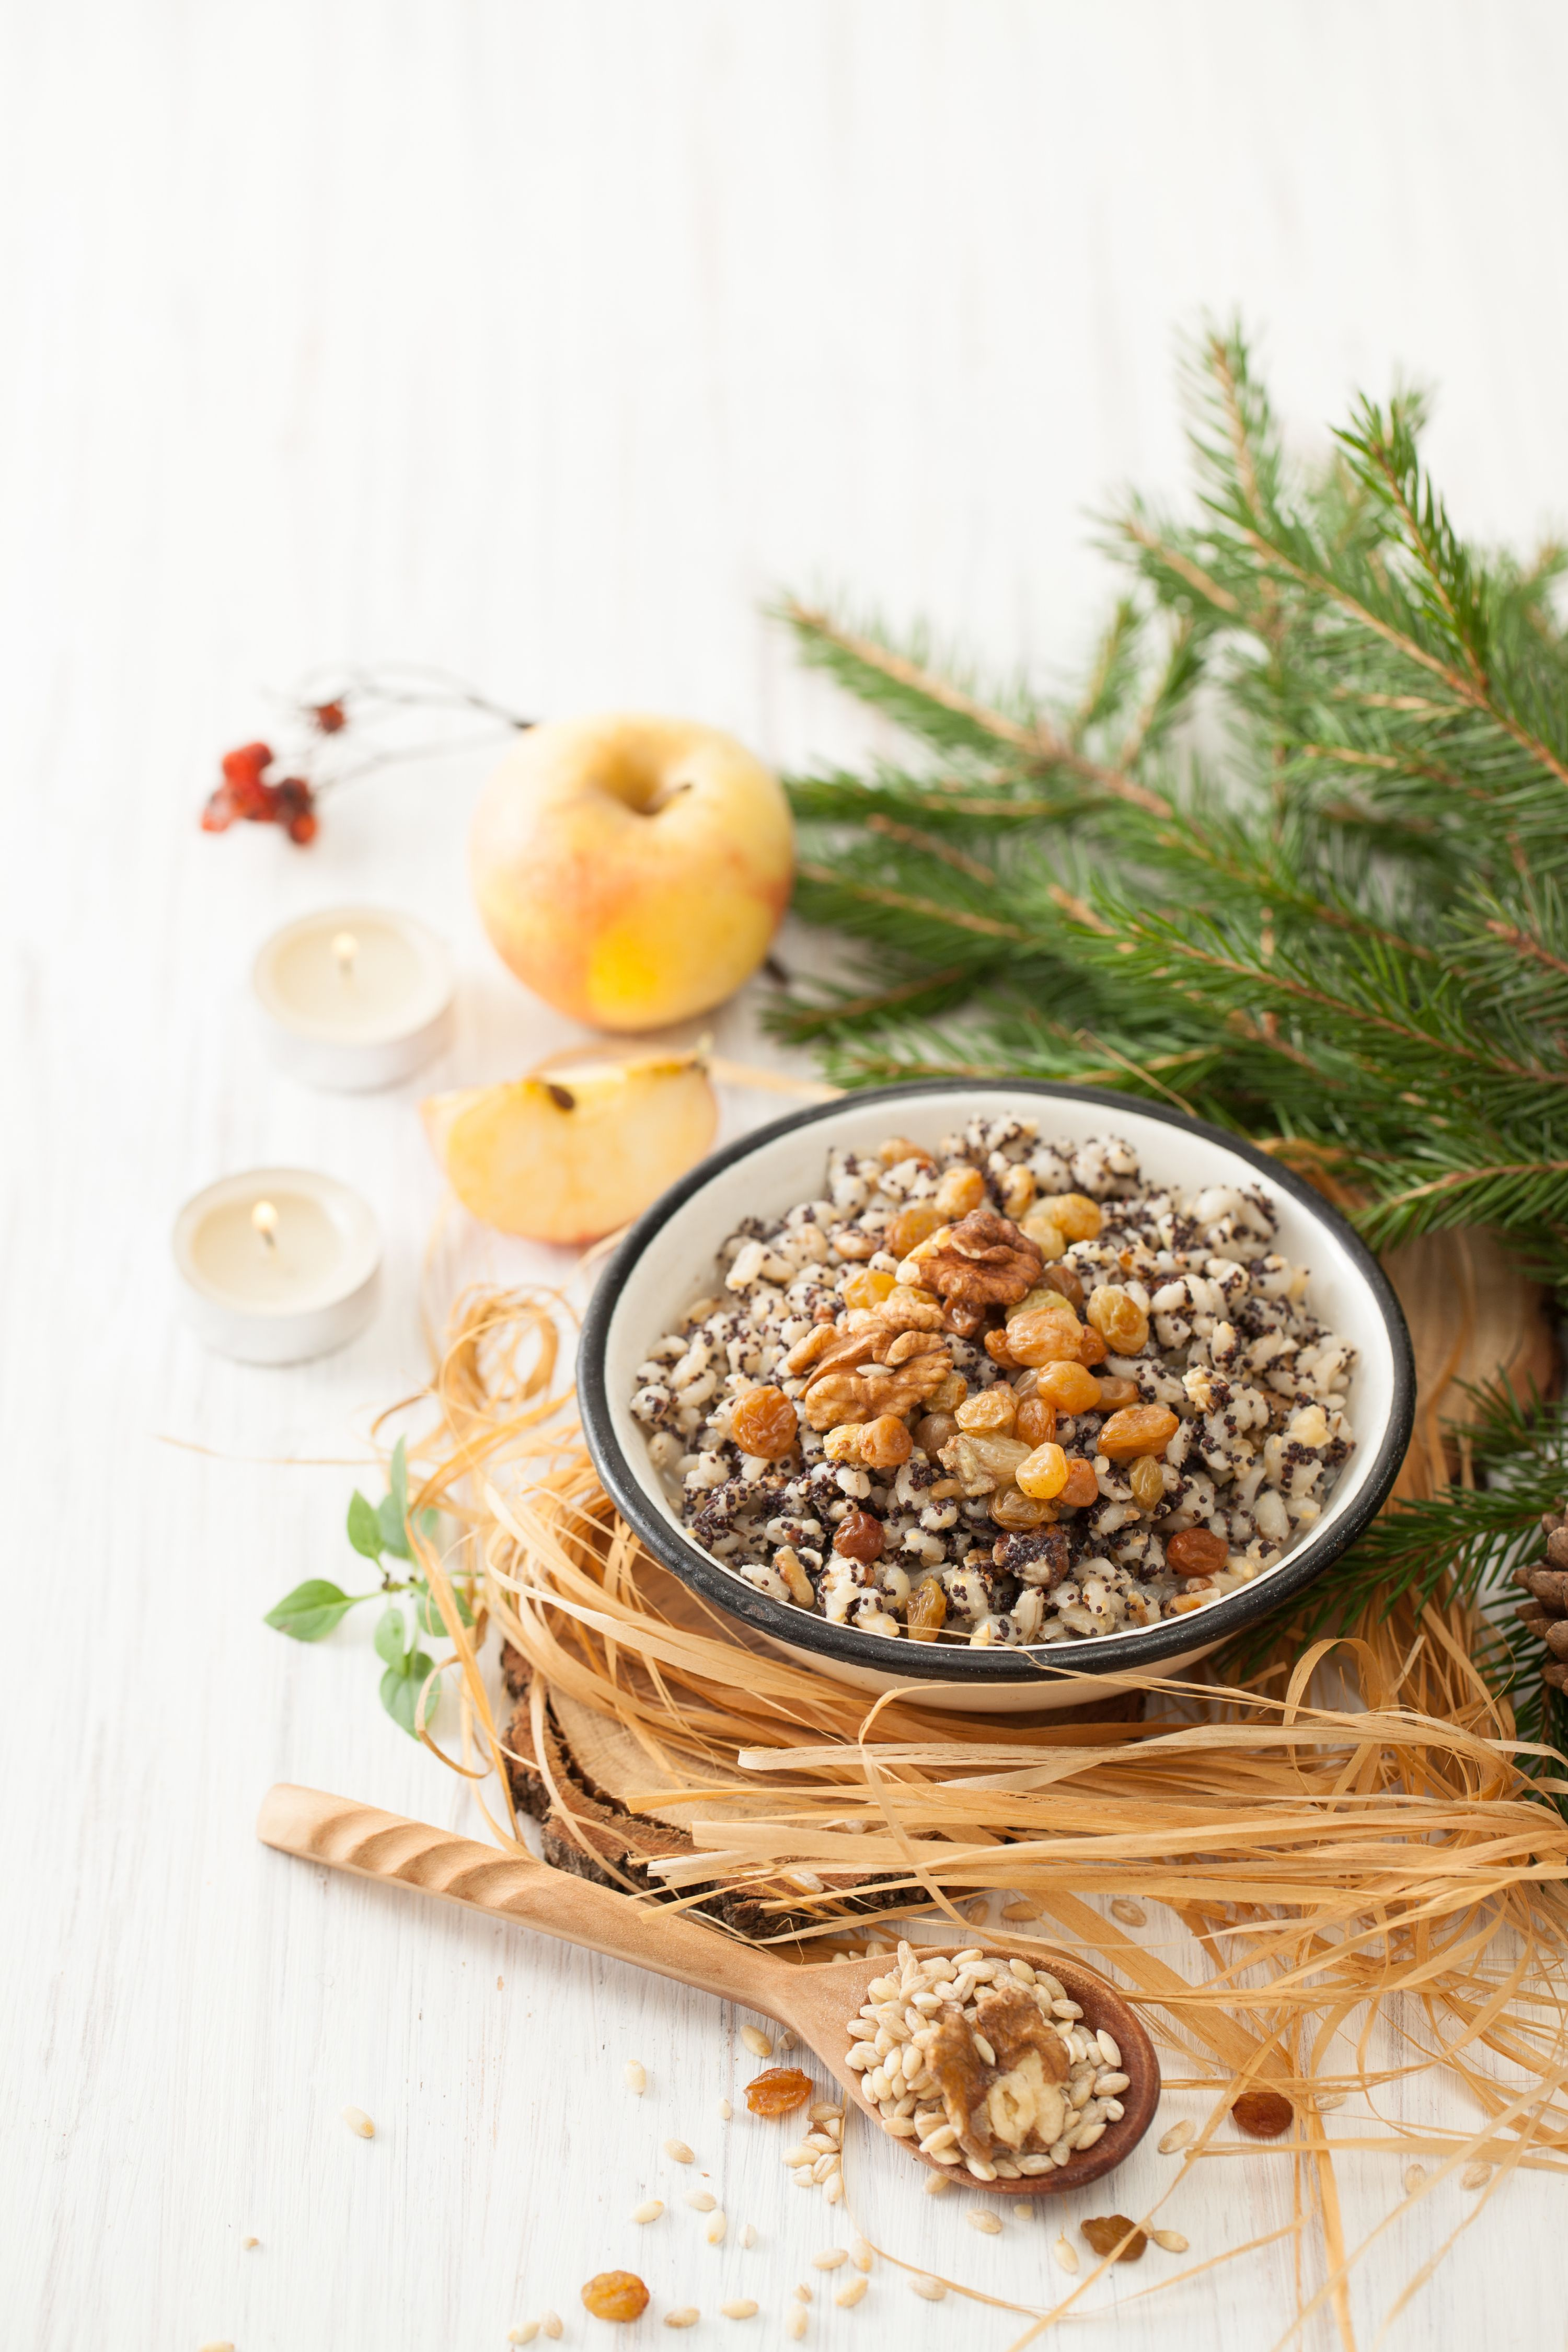 Christmas porridge with a fur-tree branch on a white table